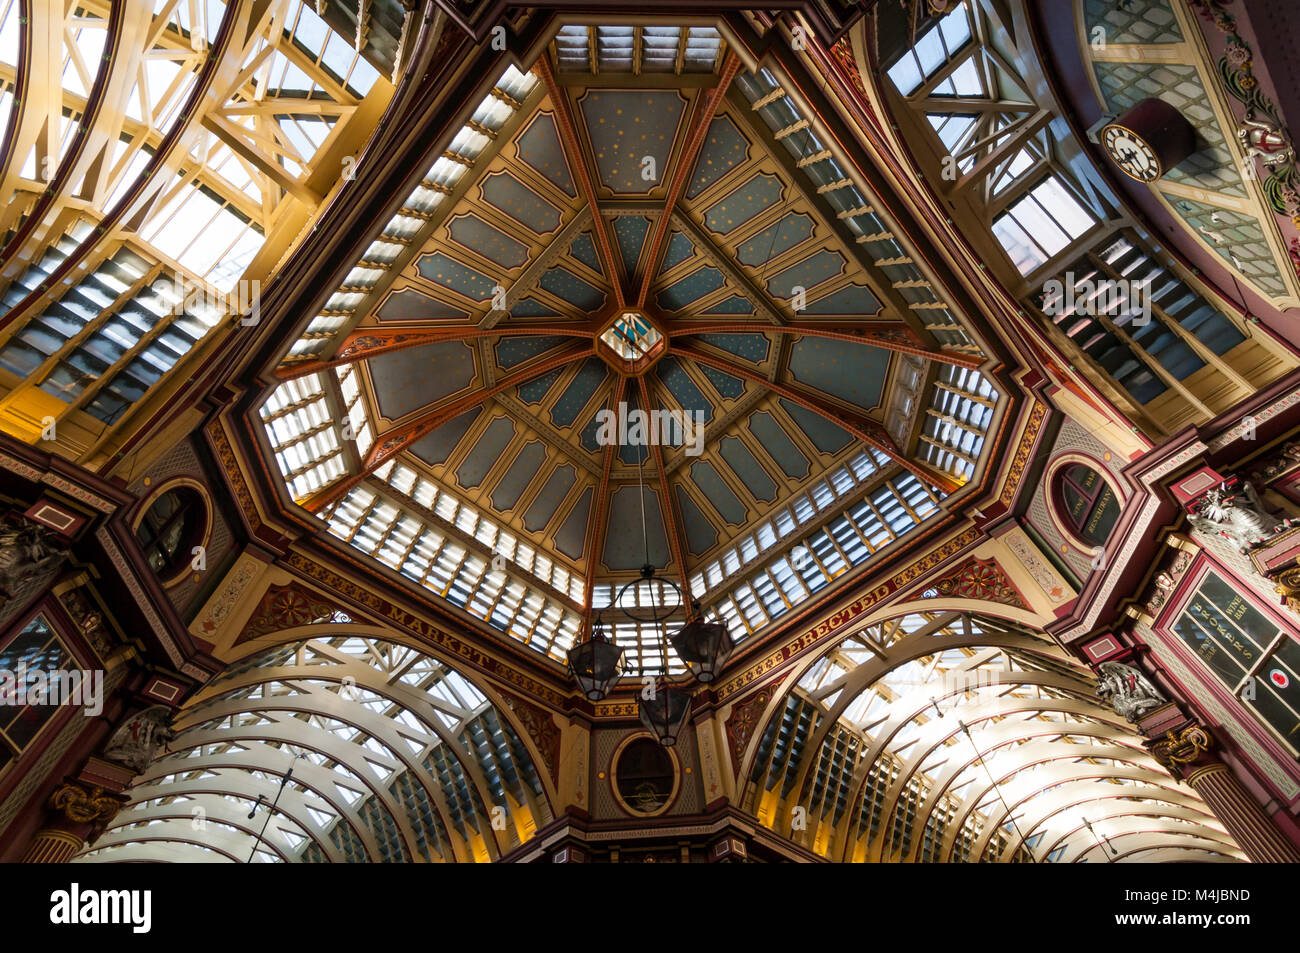 leadenhall-market-ceiling-london-united-kingdom-M4JBND.jpg